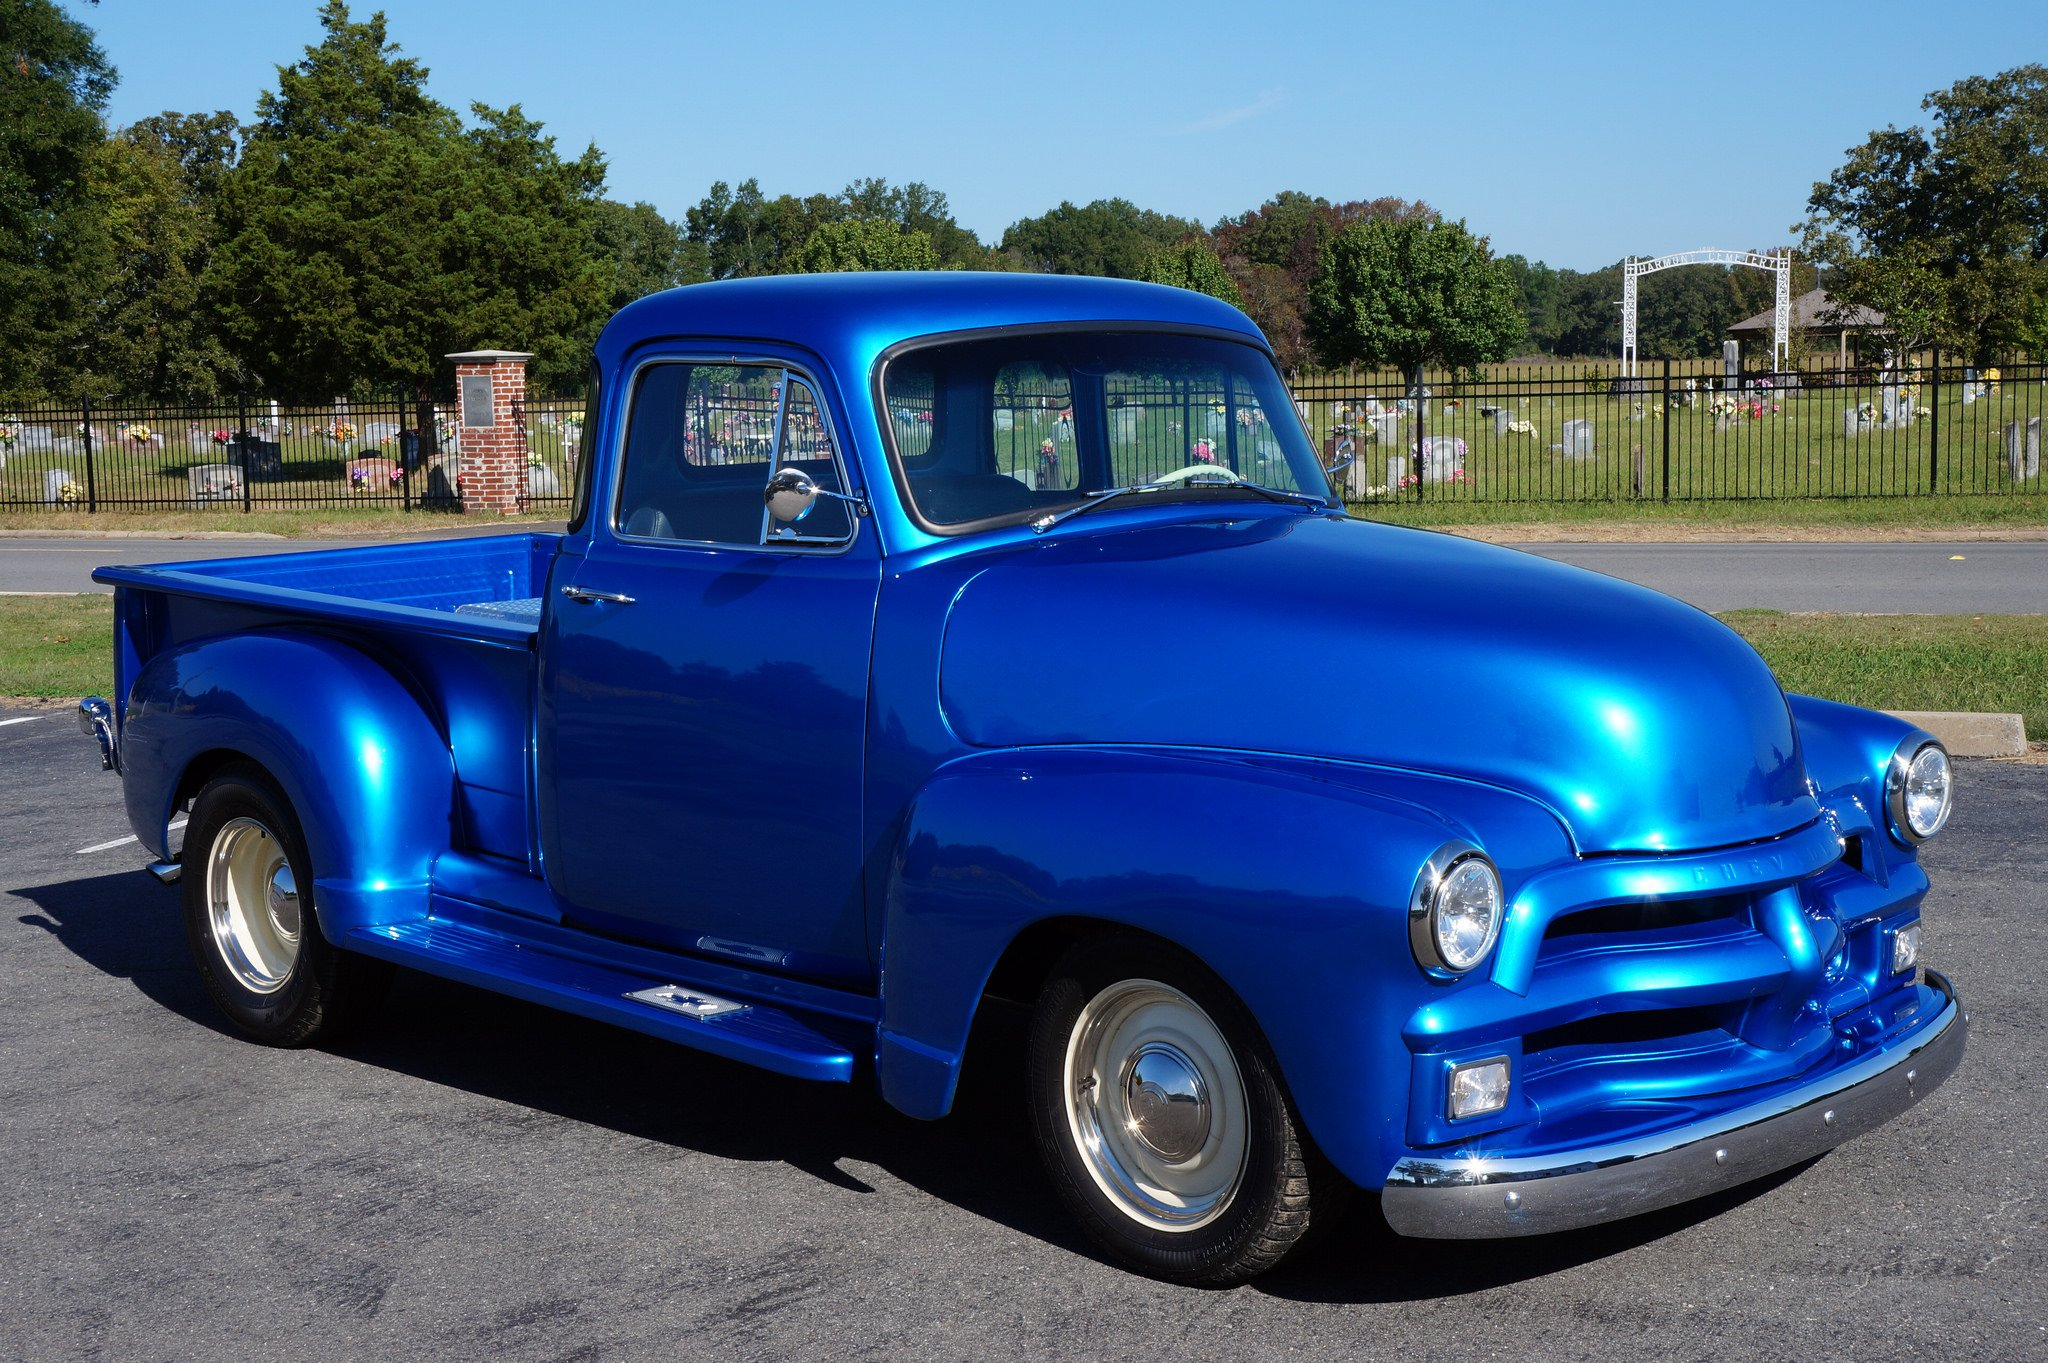 Chevrolet chevy old classic custom cars truck Pickup wallpaper ...